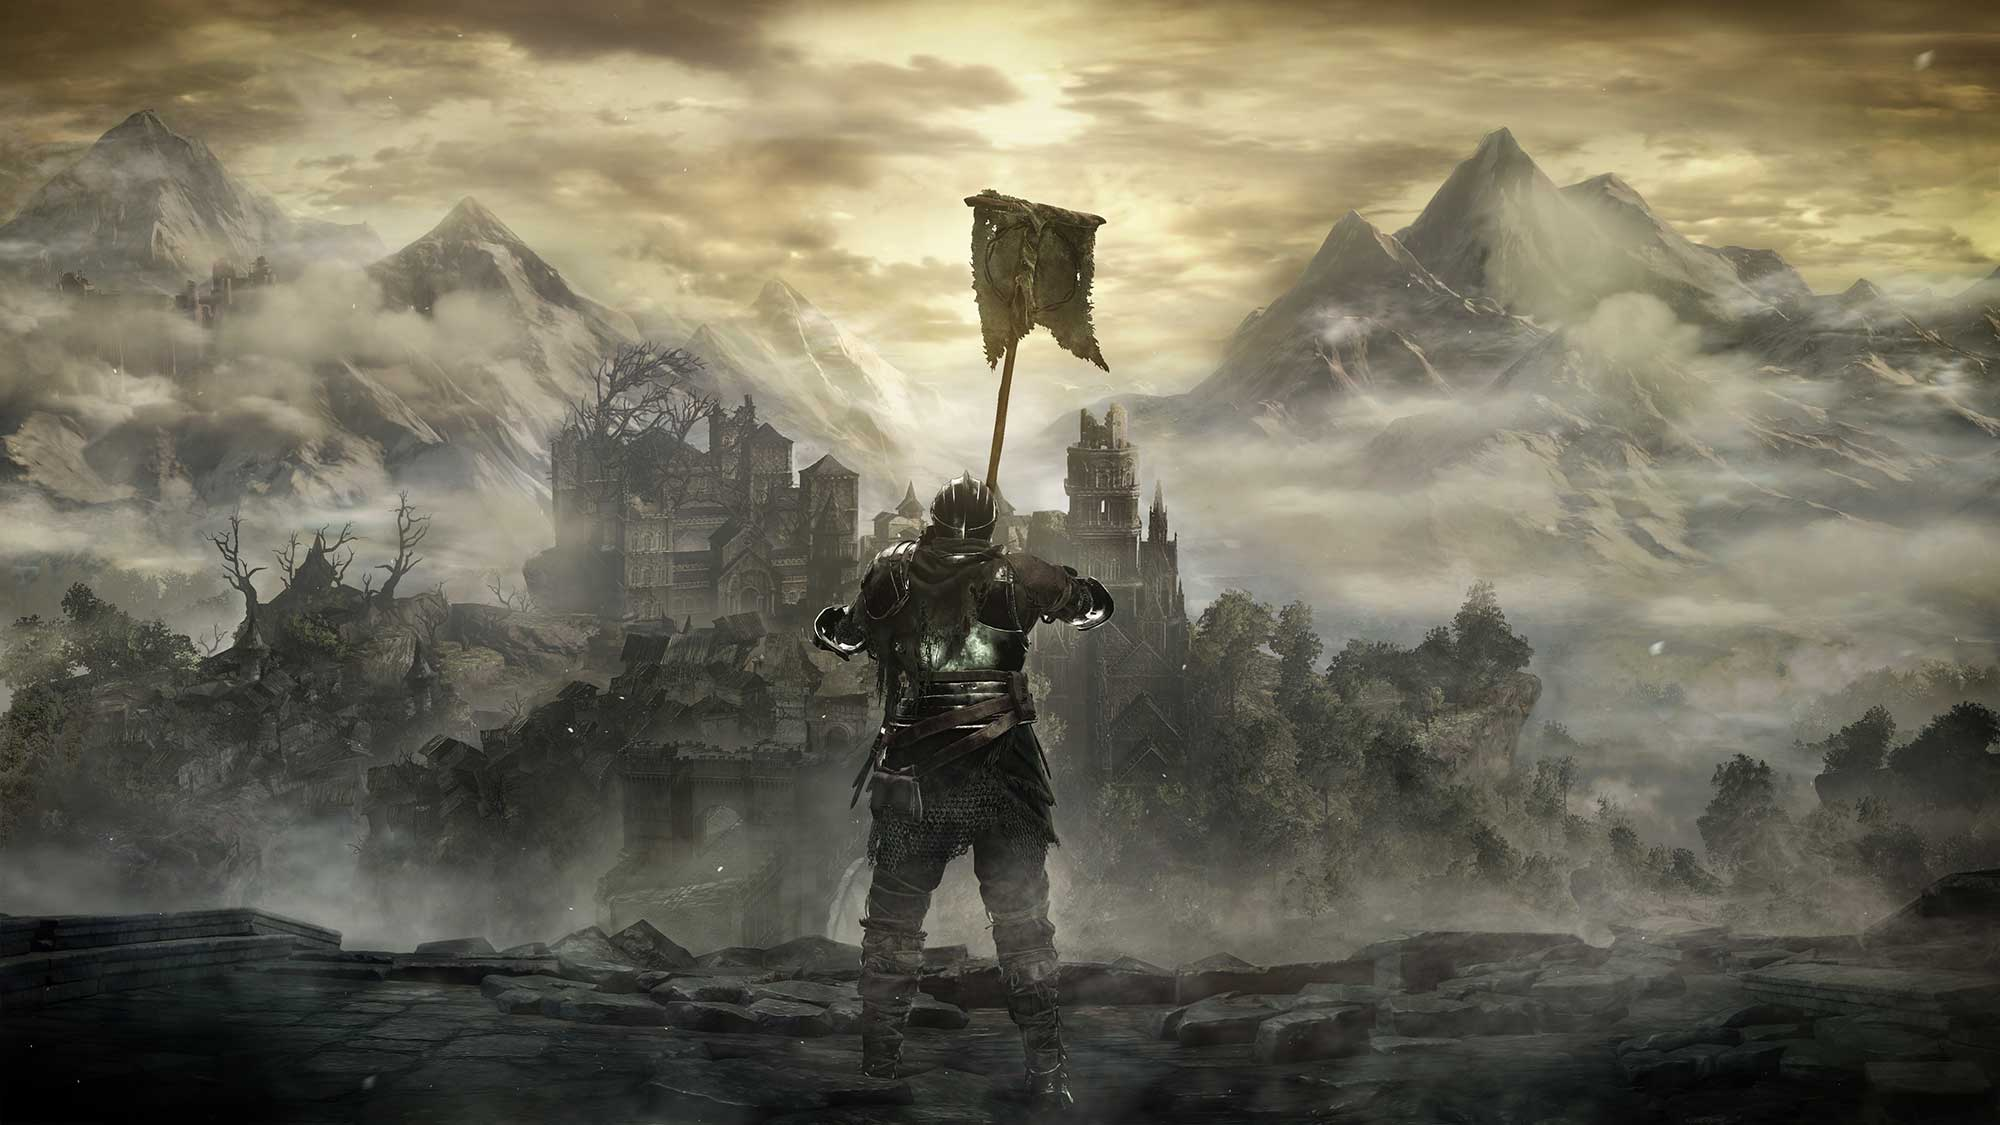 A knight lifts a banner toward the dawn in Dark Souls 3.